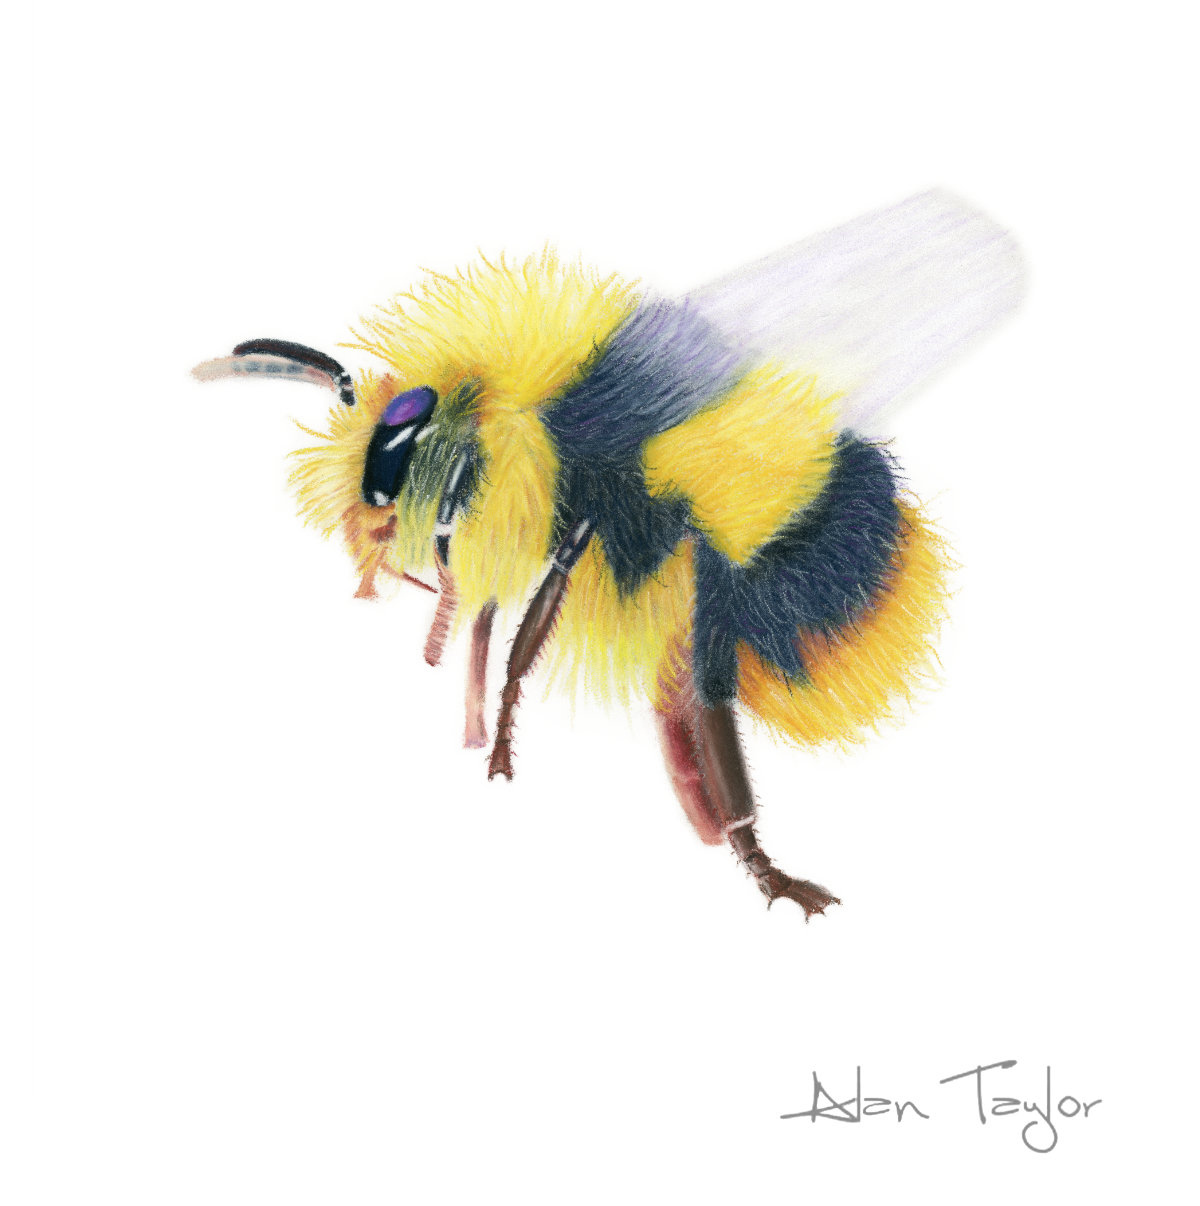 """Flight of the Bumblebee"" pastel painting by Alan Taylor Art"